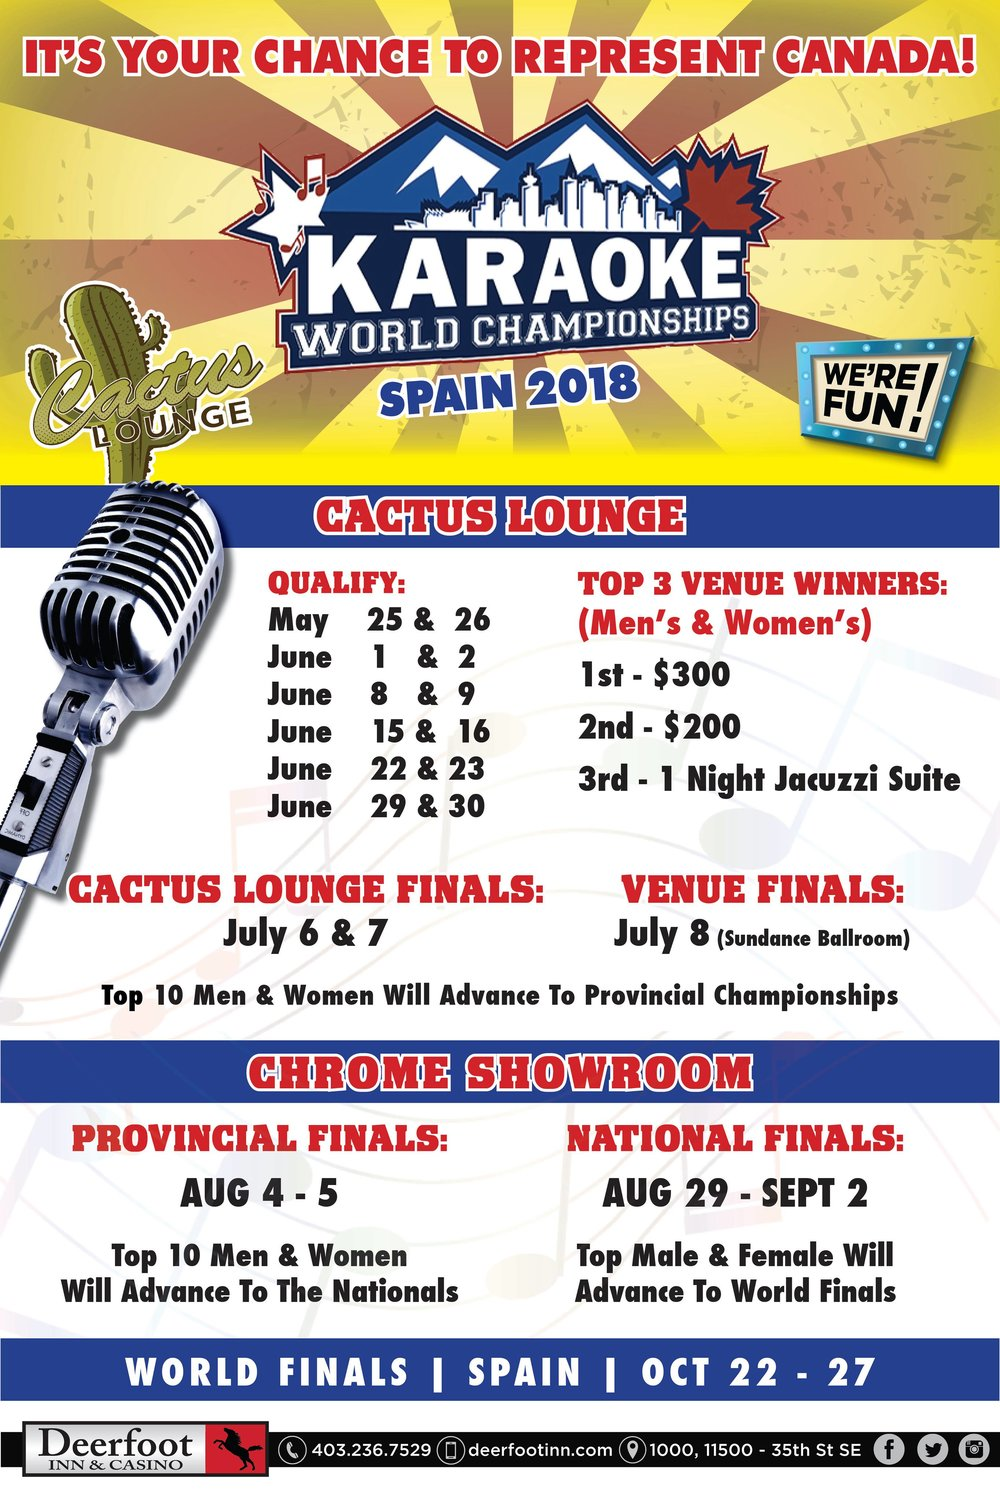 Deerfoot Inn & Casino - 1000, 11500 - 35th Street SE, Calgary, AlbertaTwelve nights to qualify - every Friday and Saturday from May 25th to June 30th!!Check-in between 8:00 and 9:15 pm - Karaoke (for non-competitors) starts at 9:00, and competition starts at 9:30 pm.For this Venue, attend at least 2 of the 12 qualifying nights and sing 1 song each night; however, you can attend as many as you would like. When qualifying nights are complete, the top scores from 2 separate songs will be used to calculate your standing and determine if you advance to the Venue Finals. The top 30 men and 30 women who will advance to the Venue Finals will be announced on Monday, July 2nd.If you qualify for the Venue Finals, you will sing 2 songs (different from those your qualified with). The first song will be on either Friday, July 6th or Saturday, July 7th, and everyone will sing their second song at the Venue Finale on Sunday, July 8th in the Sundance Ballroom.PROVINCIAL FINALS - will be held at Deerfoot Inn & Casino in the Chrome Showroom on August 4th & 5th. To book a room at the special rate reserved for competitors (and their friends and family), use promo code KARAOKE3.Tickets are on sale for the Sunday Finale (doors open at 6:15 pm and the show begins at 7:00 -https://www.ticketor.com/kwccanada/events$10.00 in advance (until 6:00 pm August 5) & $15.00 at the doorHosted by: KISS Productions